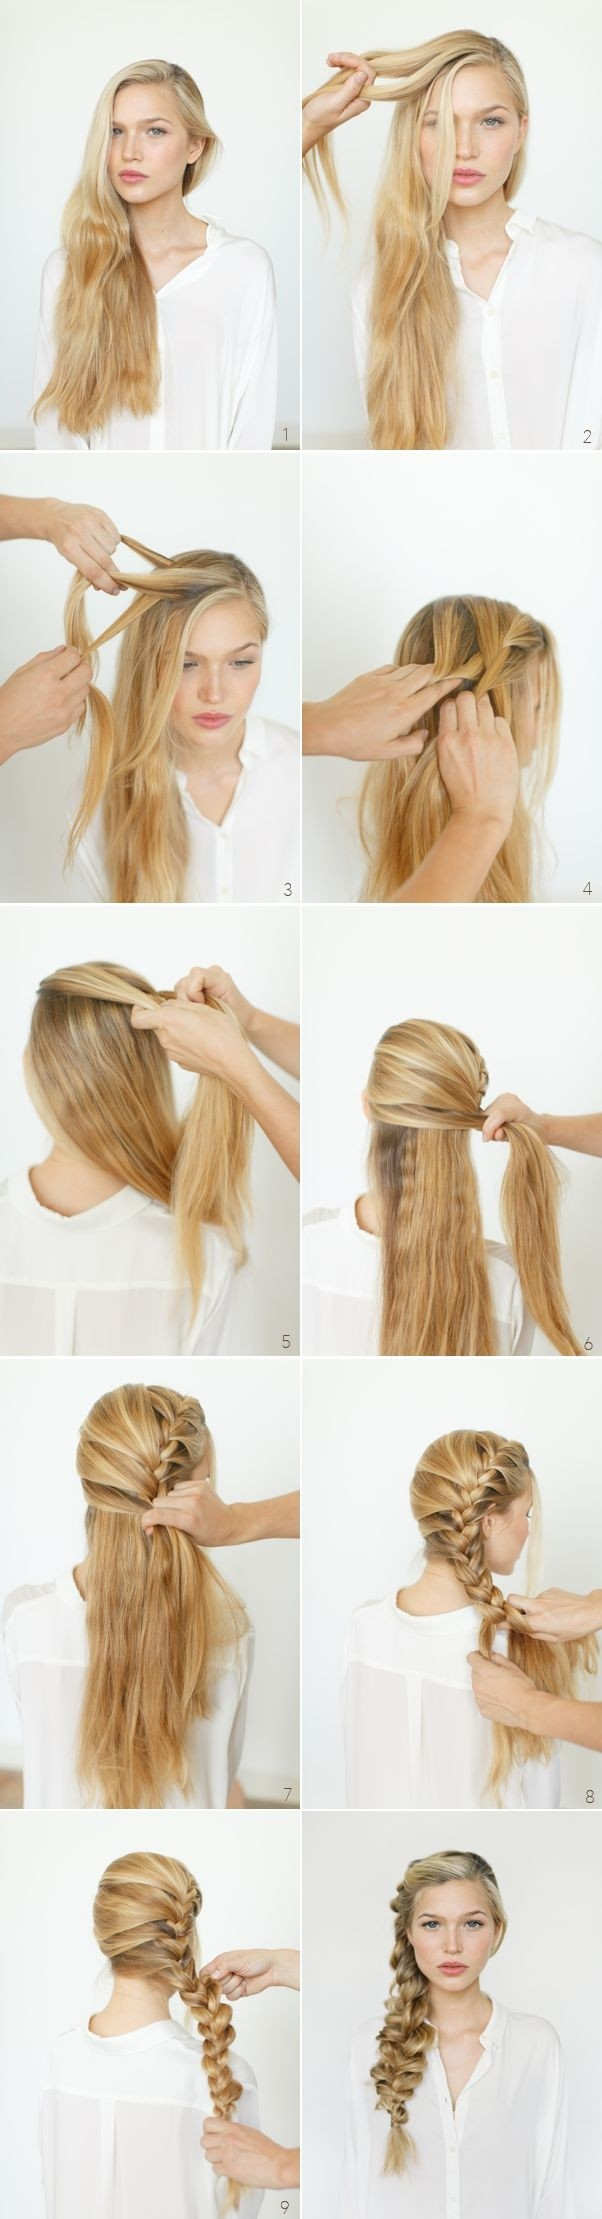 8 cute braided hairstyles for girls: long hair ideas - popular